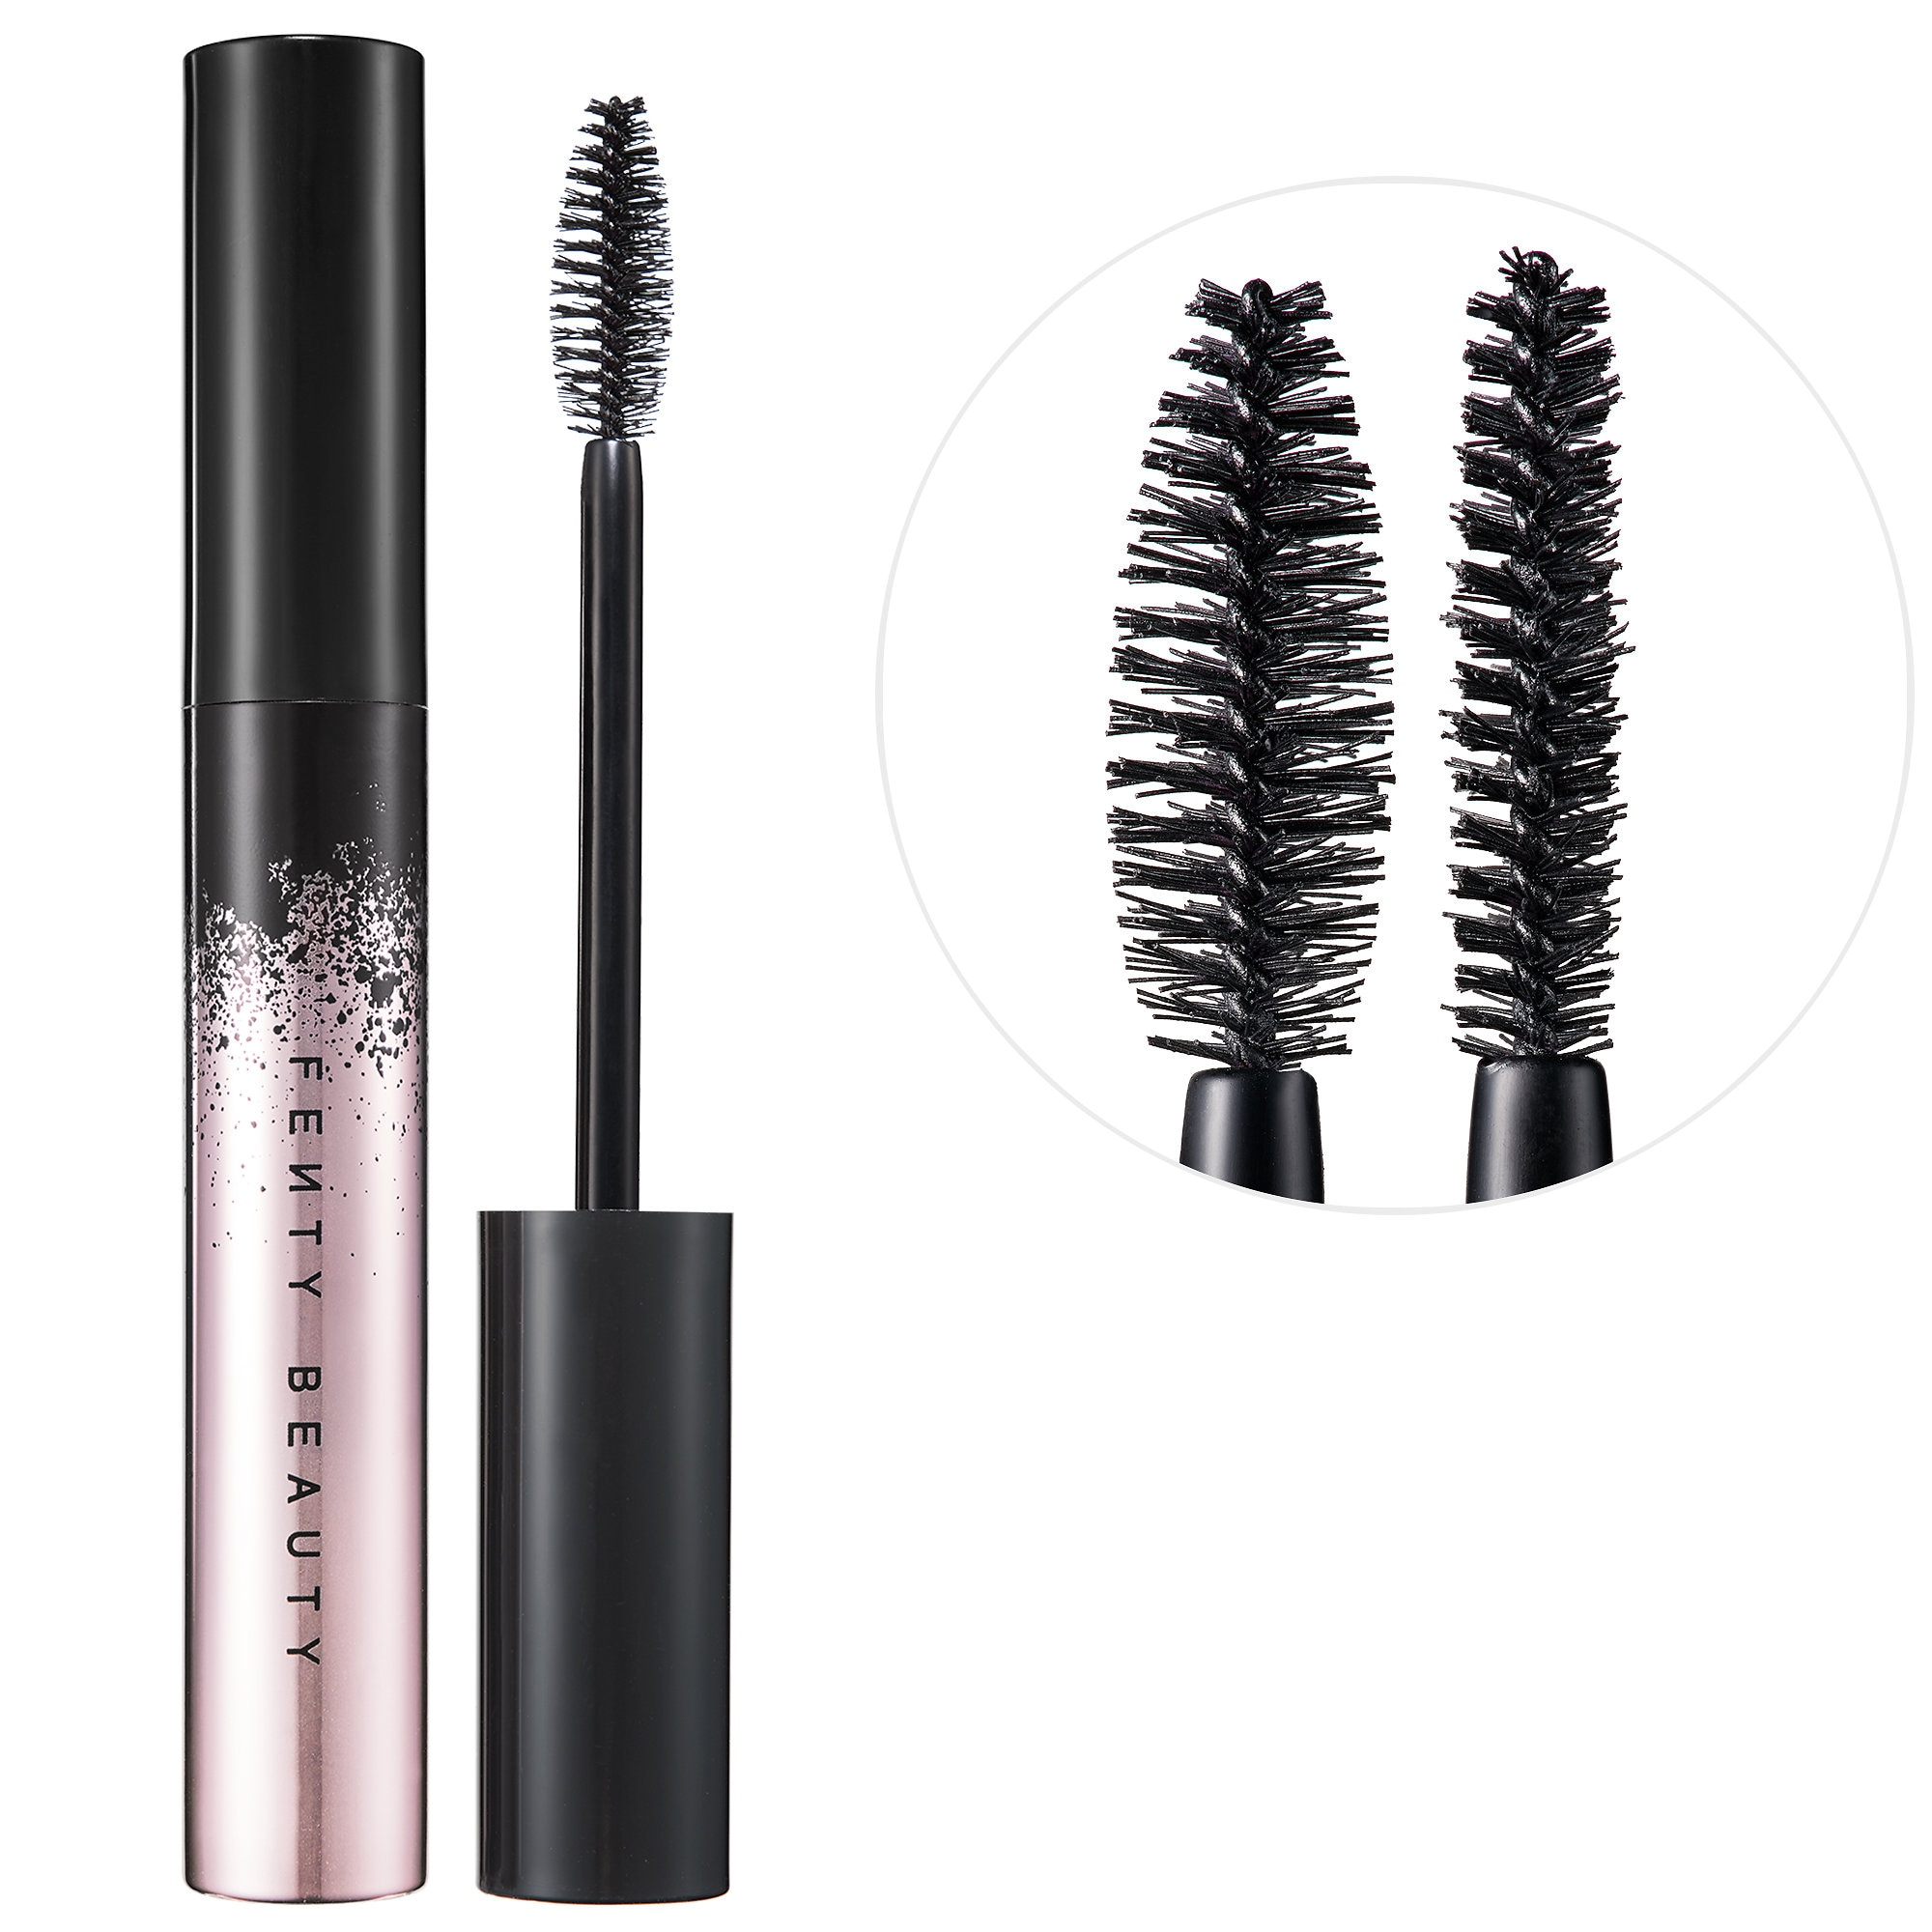 Fenty - Full Frontal Volume, Lift & Curl Mascara